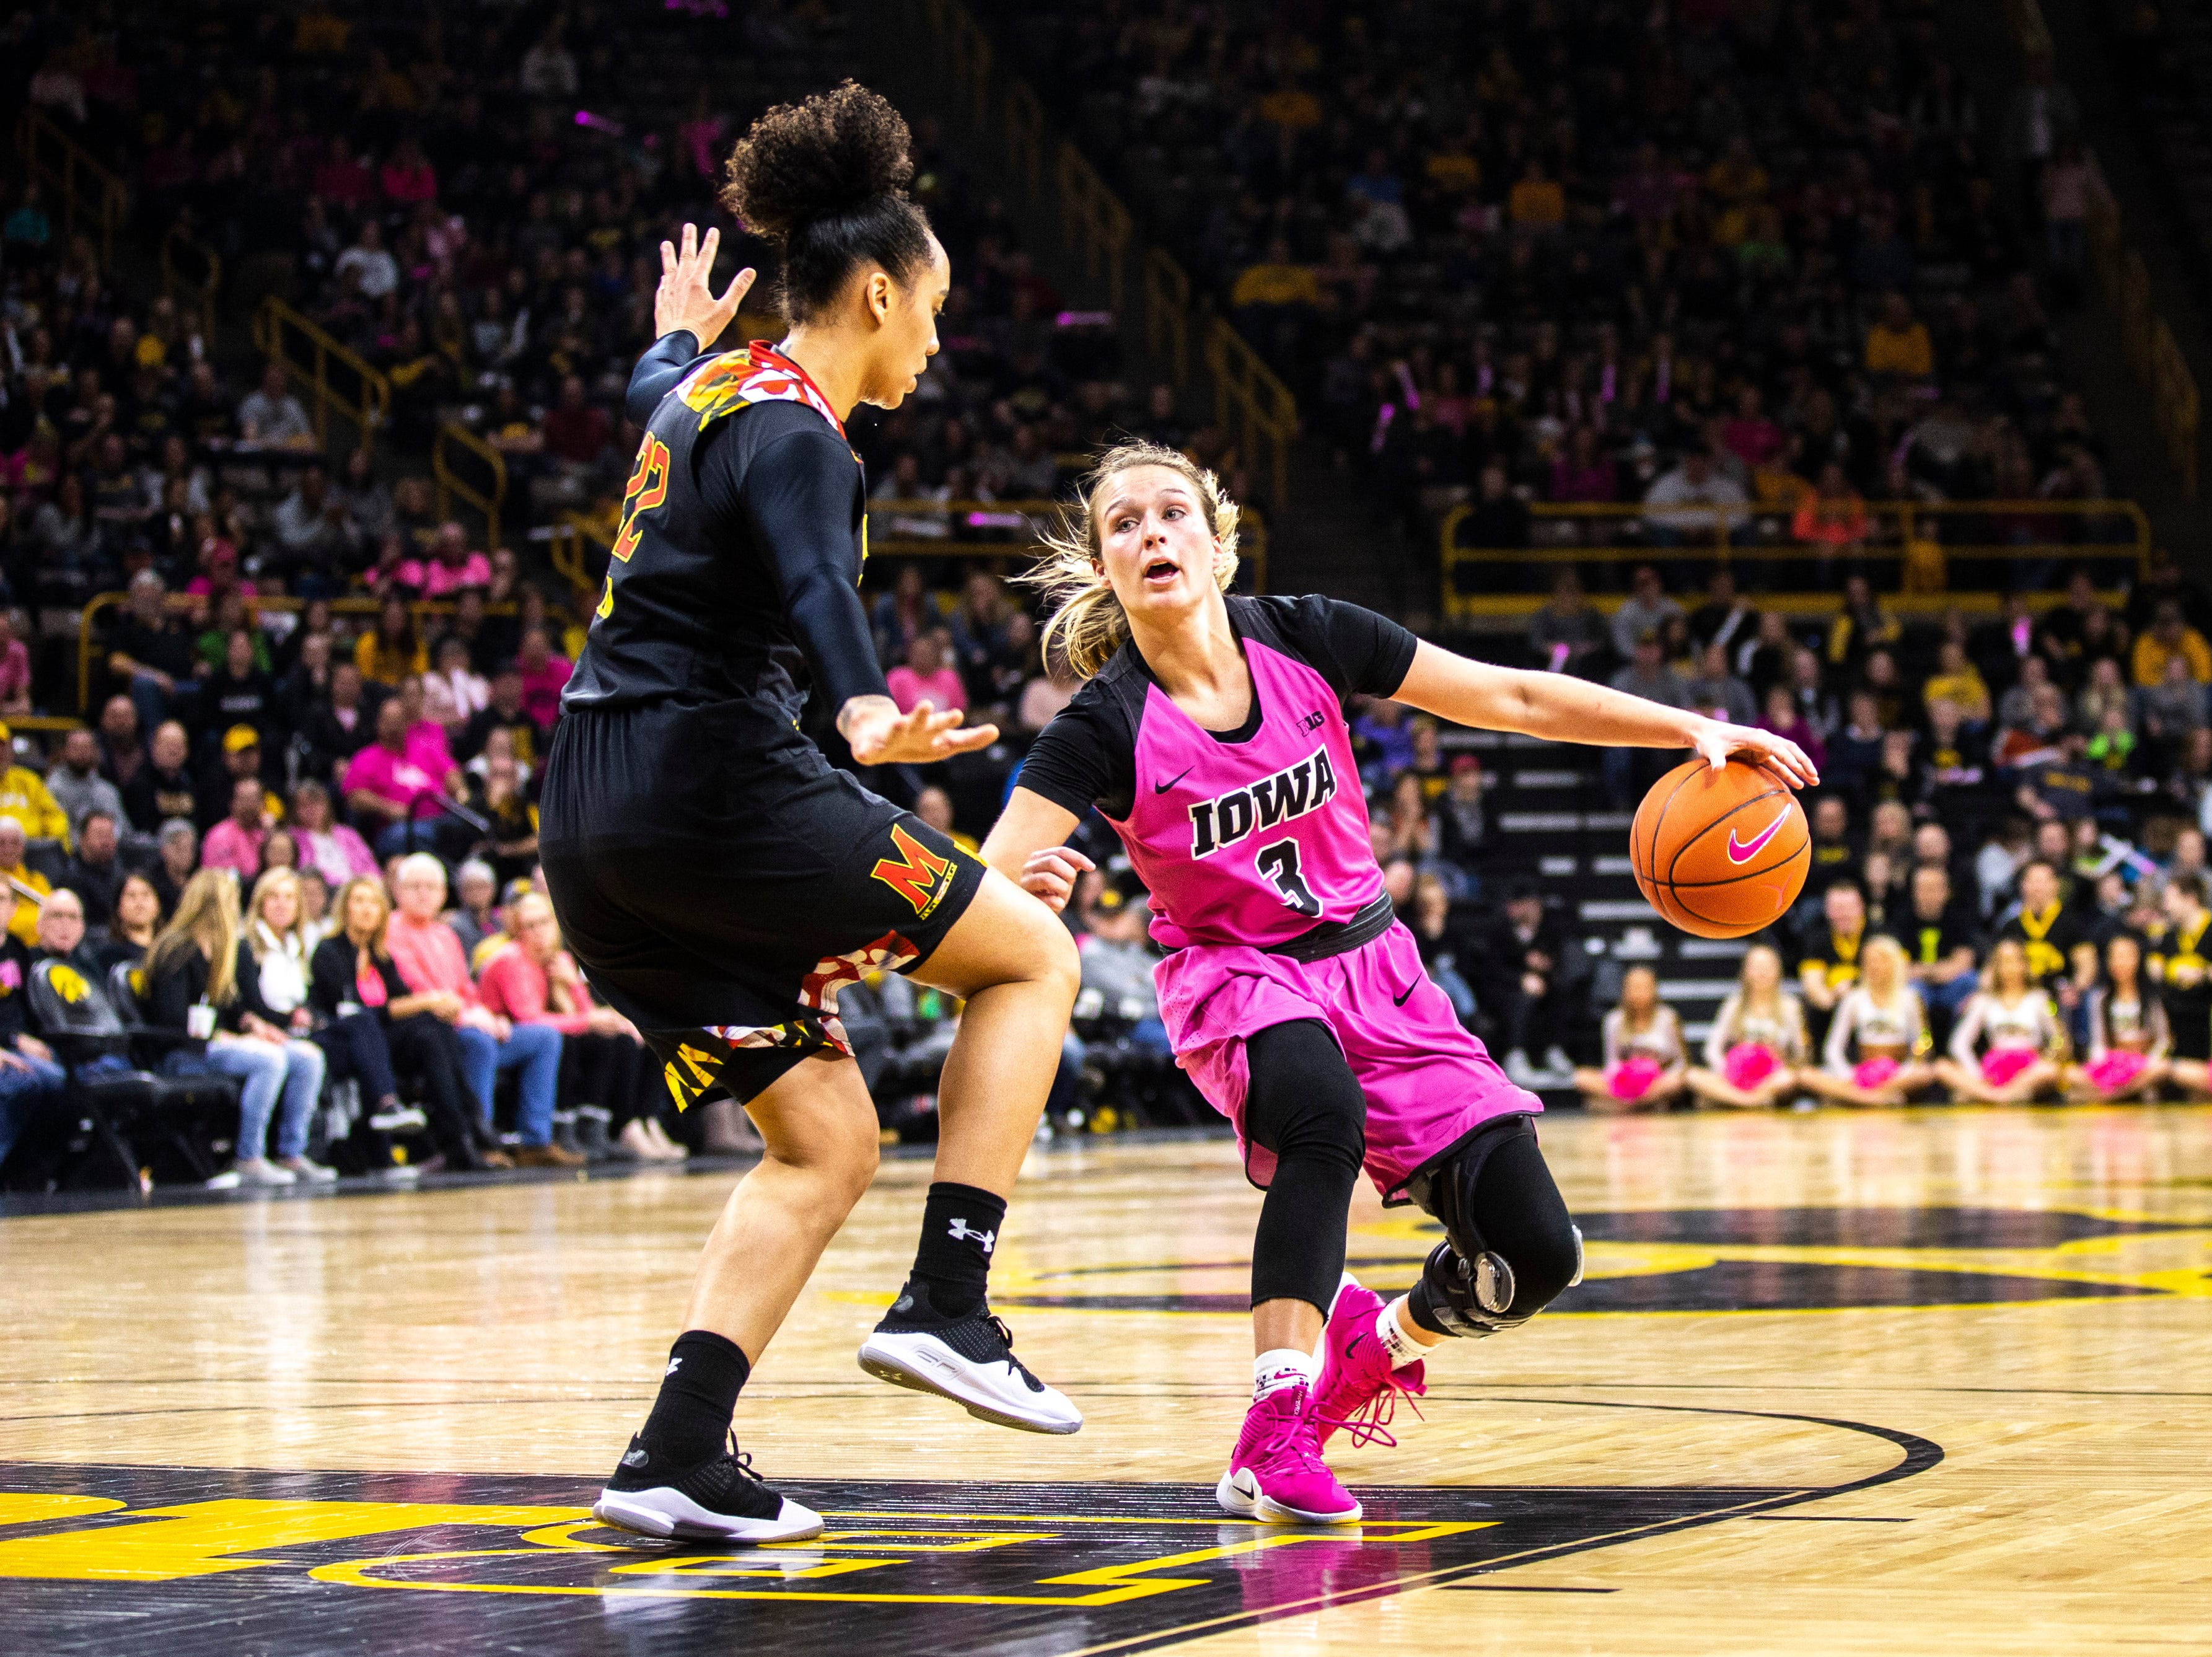 Iowa guard Makenzie Meyer (3) dribbles while Maryland guard Blair Watson (22) defends during a NCAA Big Ten Conference women's basketball game on Sunday, Feb. 17, 2019 at Carver-Hawkeye Arena in Iowa City, Iowa.